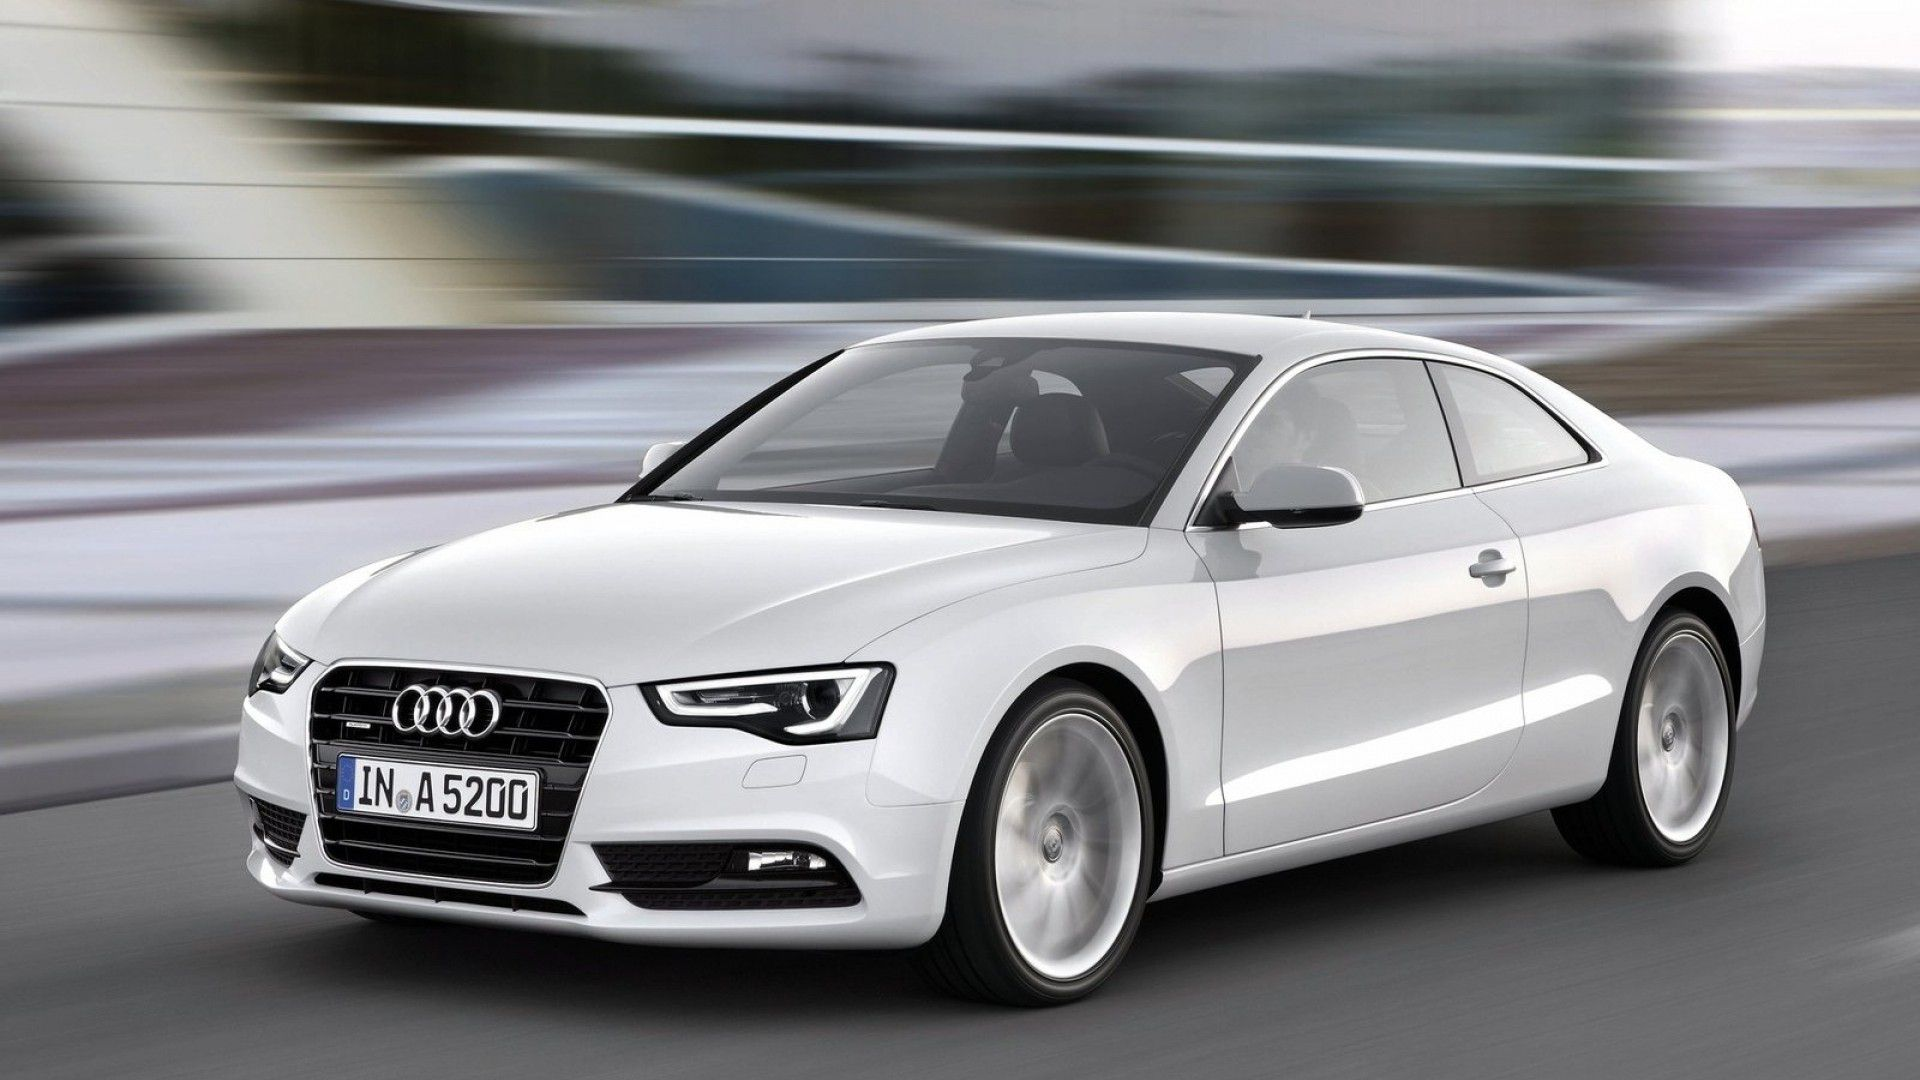 Audi A5 (2007 to Present)